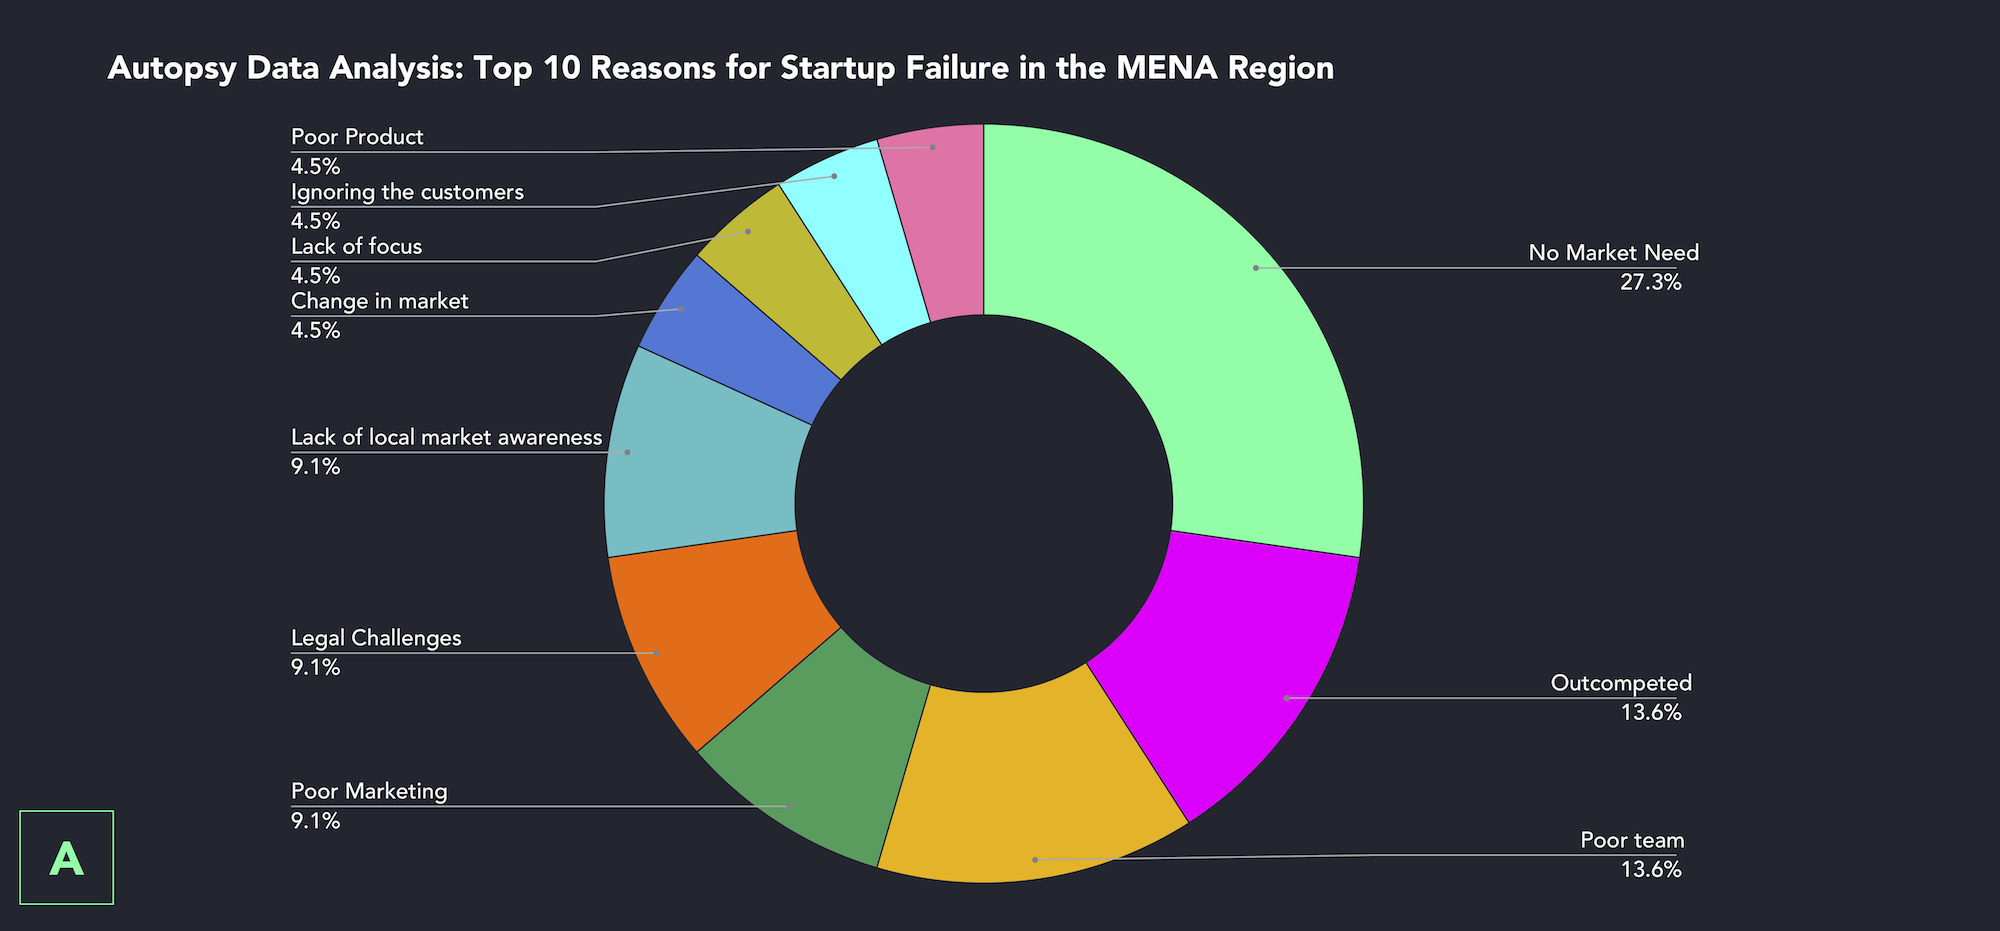 A First Look into MENA Region failures - We worked closely with an ex-Reuters journalist to write a co-authored piece for Wamda, the major online publication popular amongst MENA (Middle East and North Africa). Looking into the causes of startup failure in this region and the results were surprising to say the least.